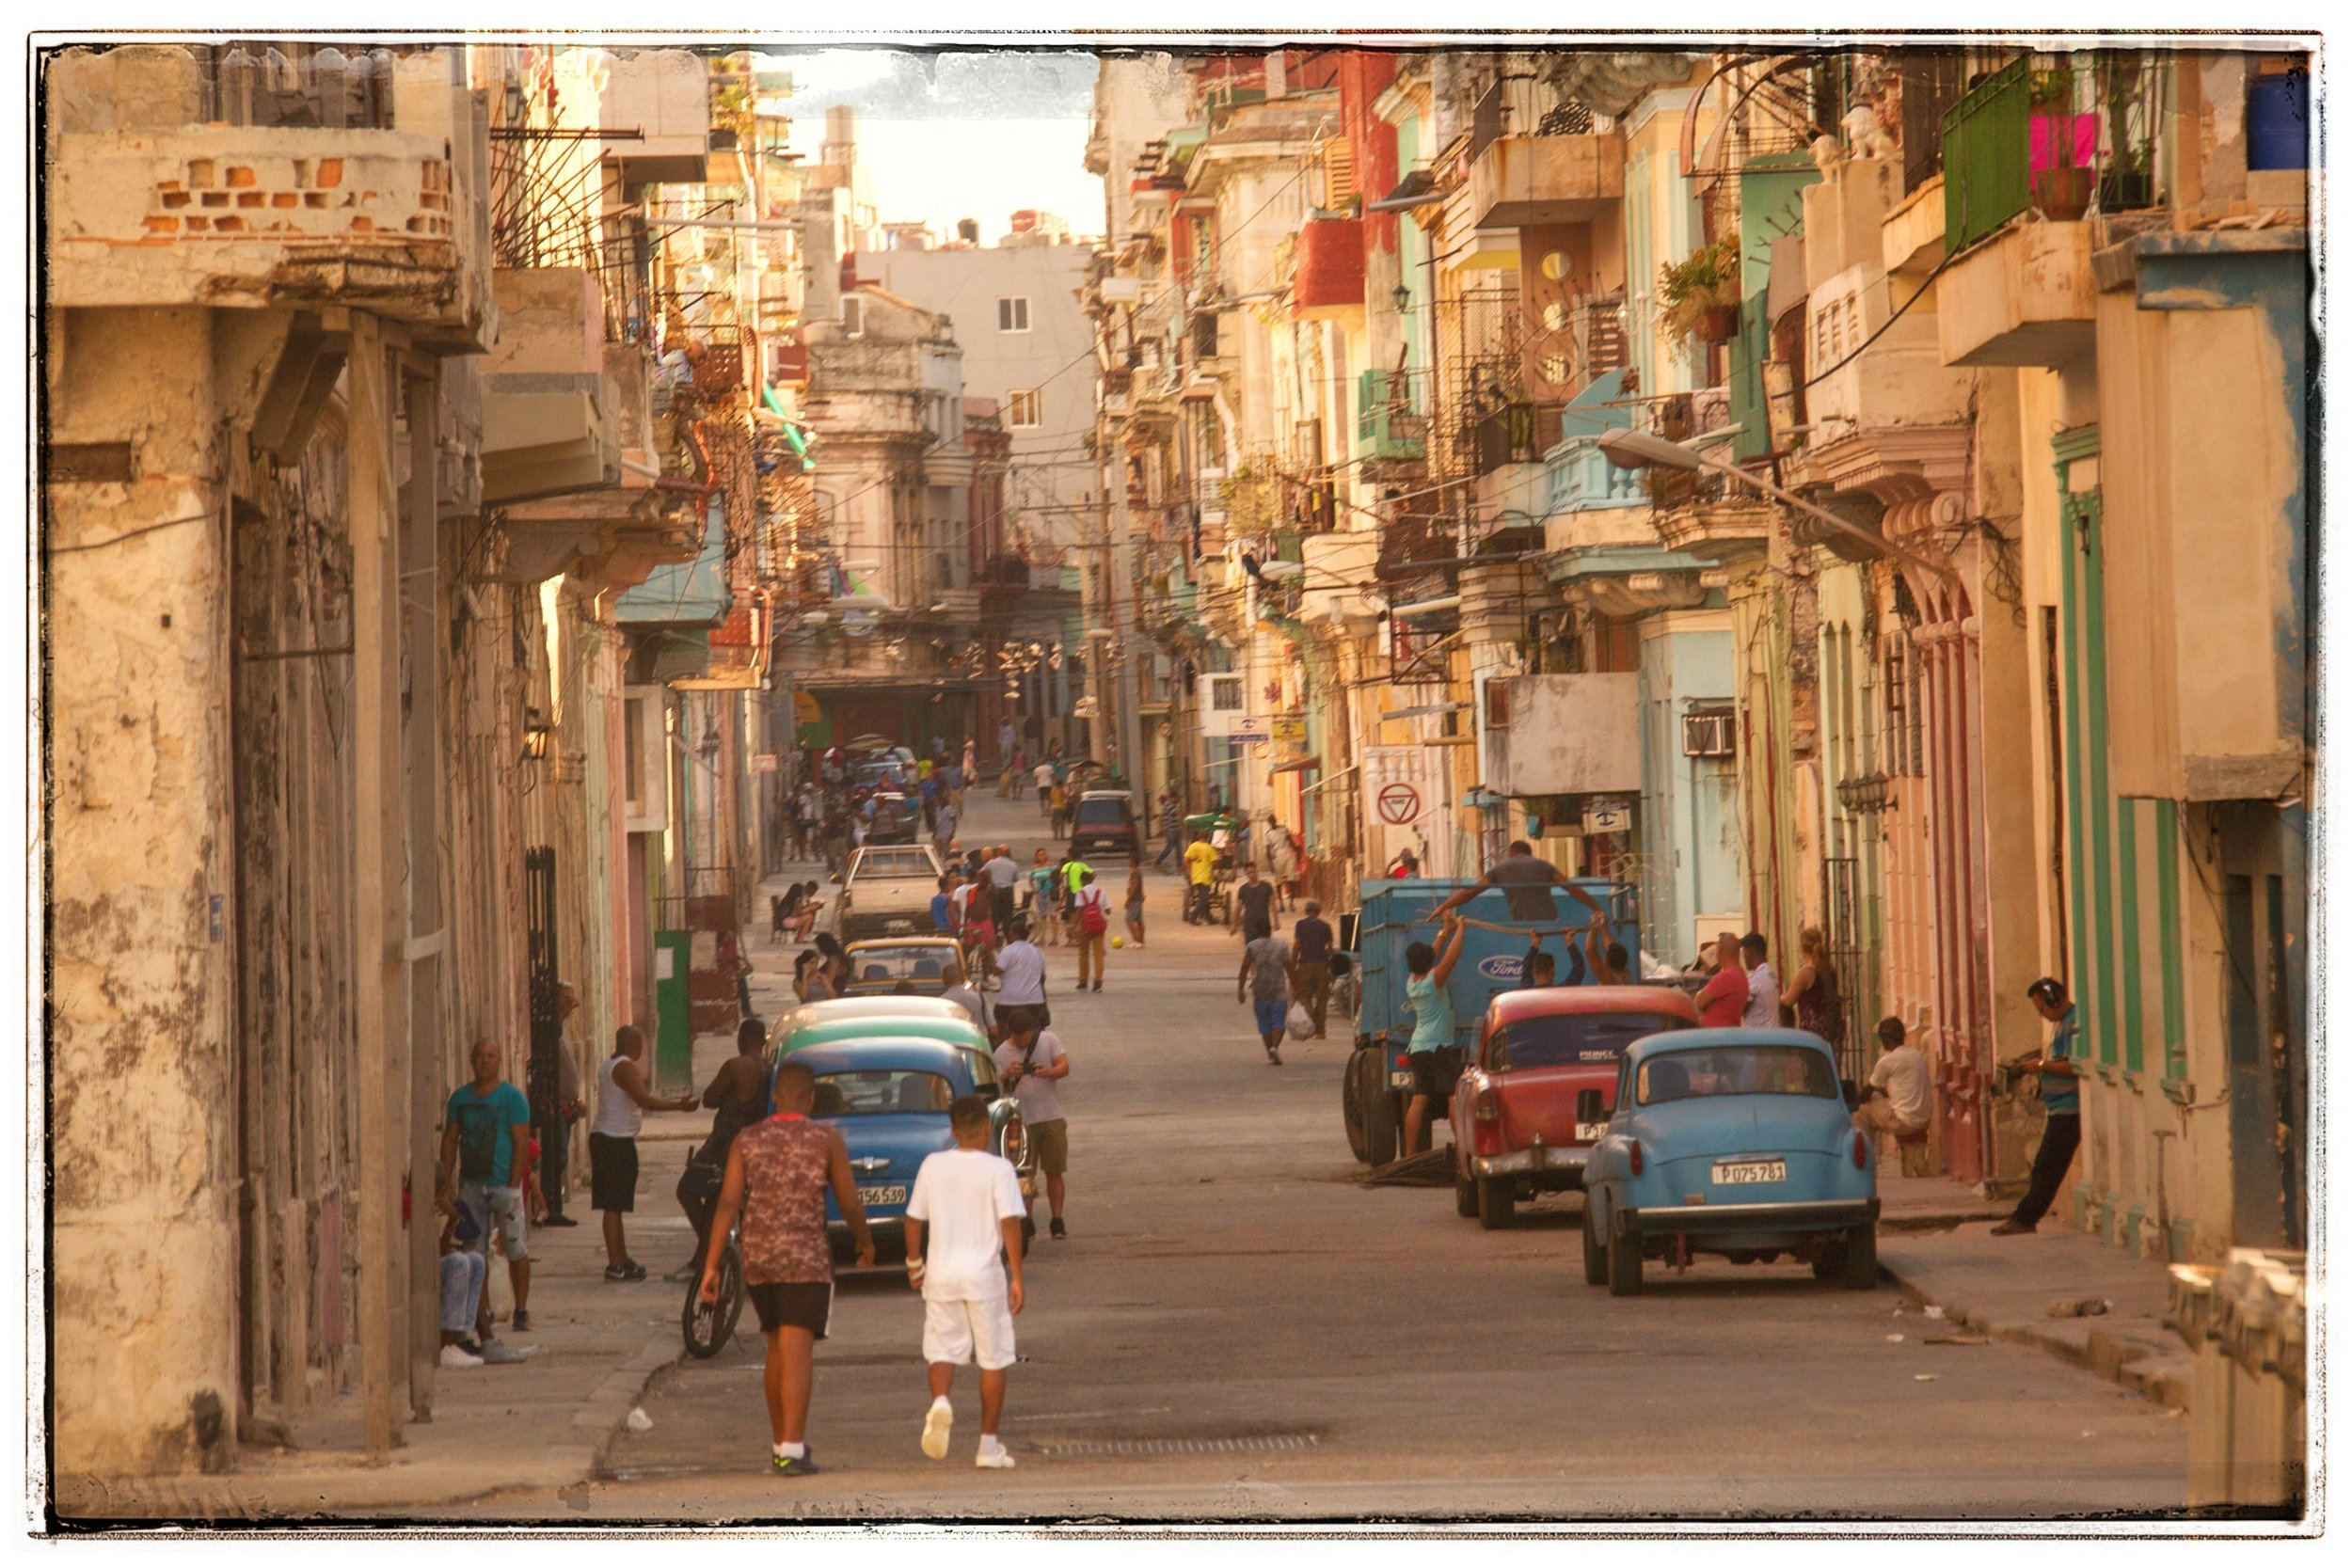 Typical street scene in old Havana.